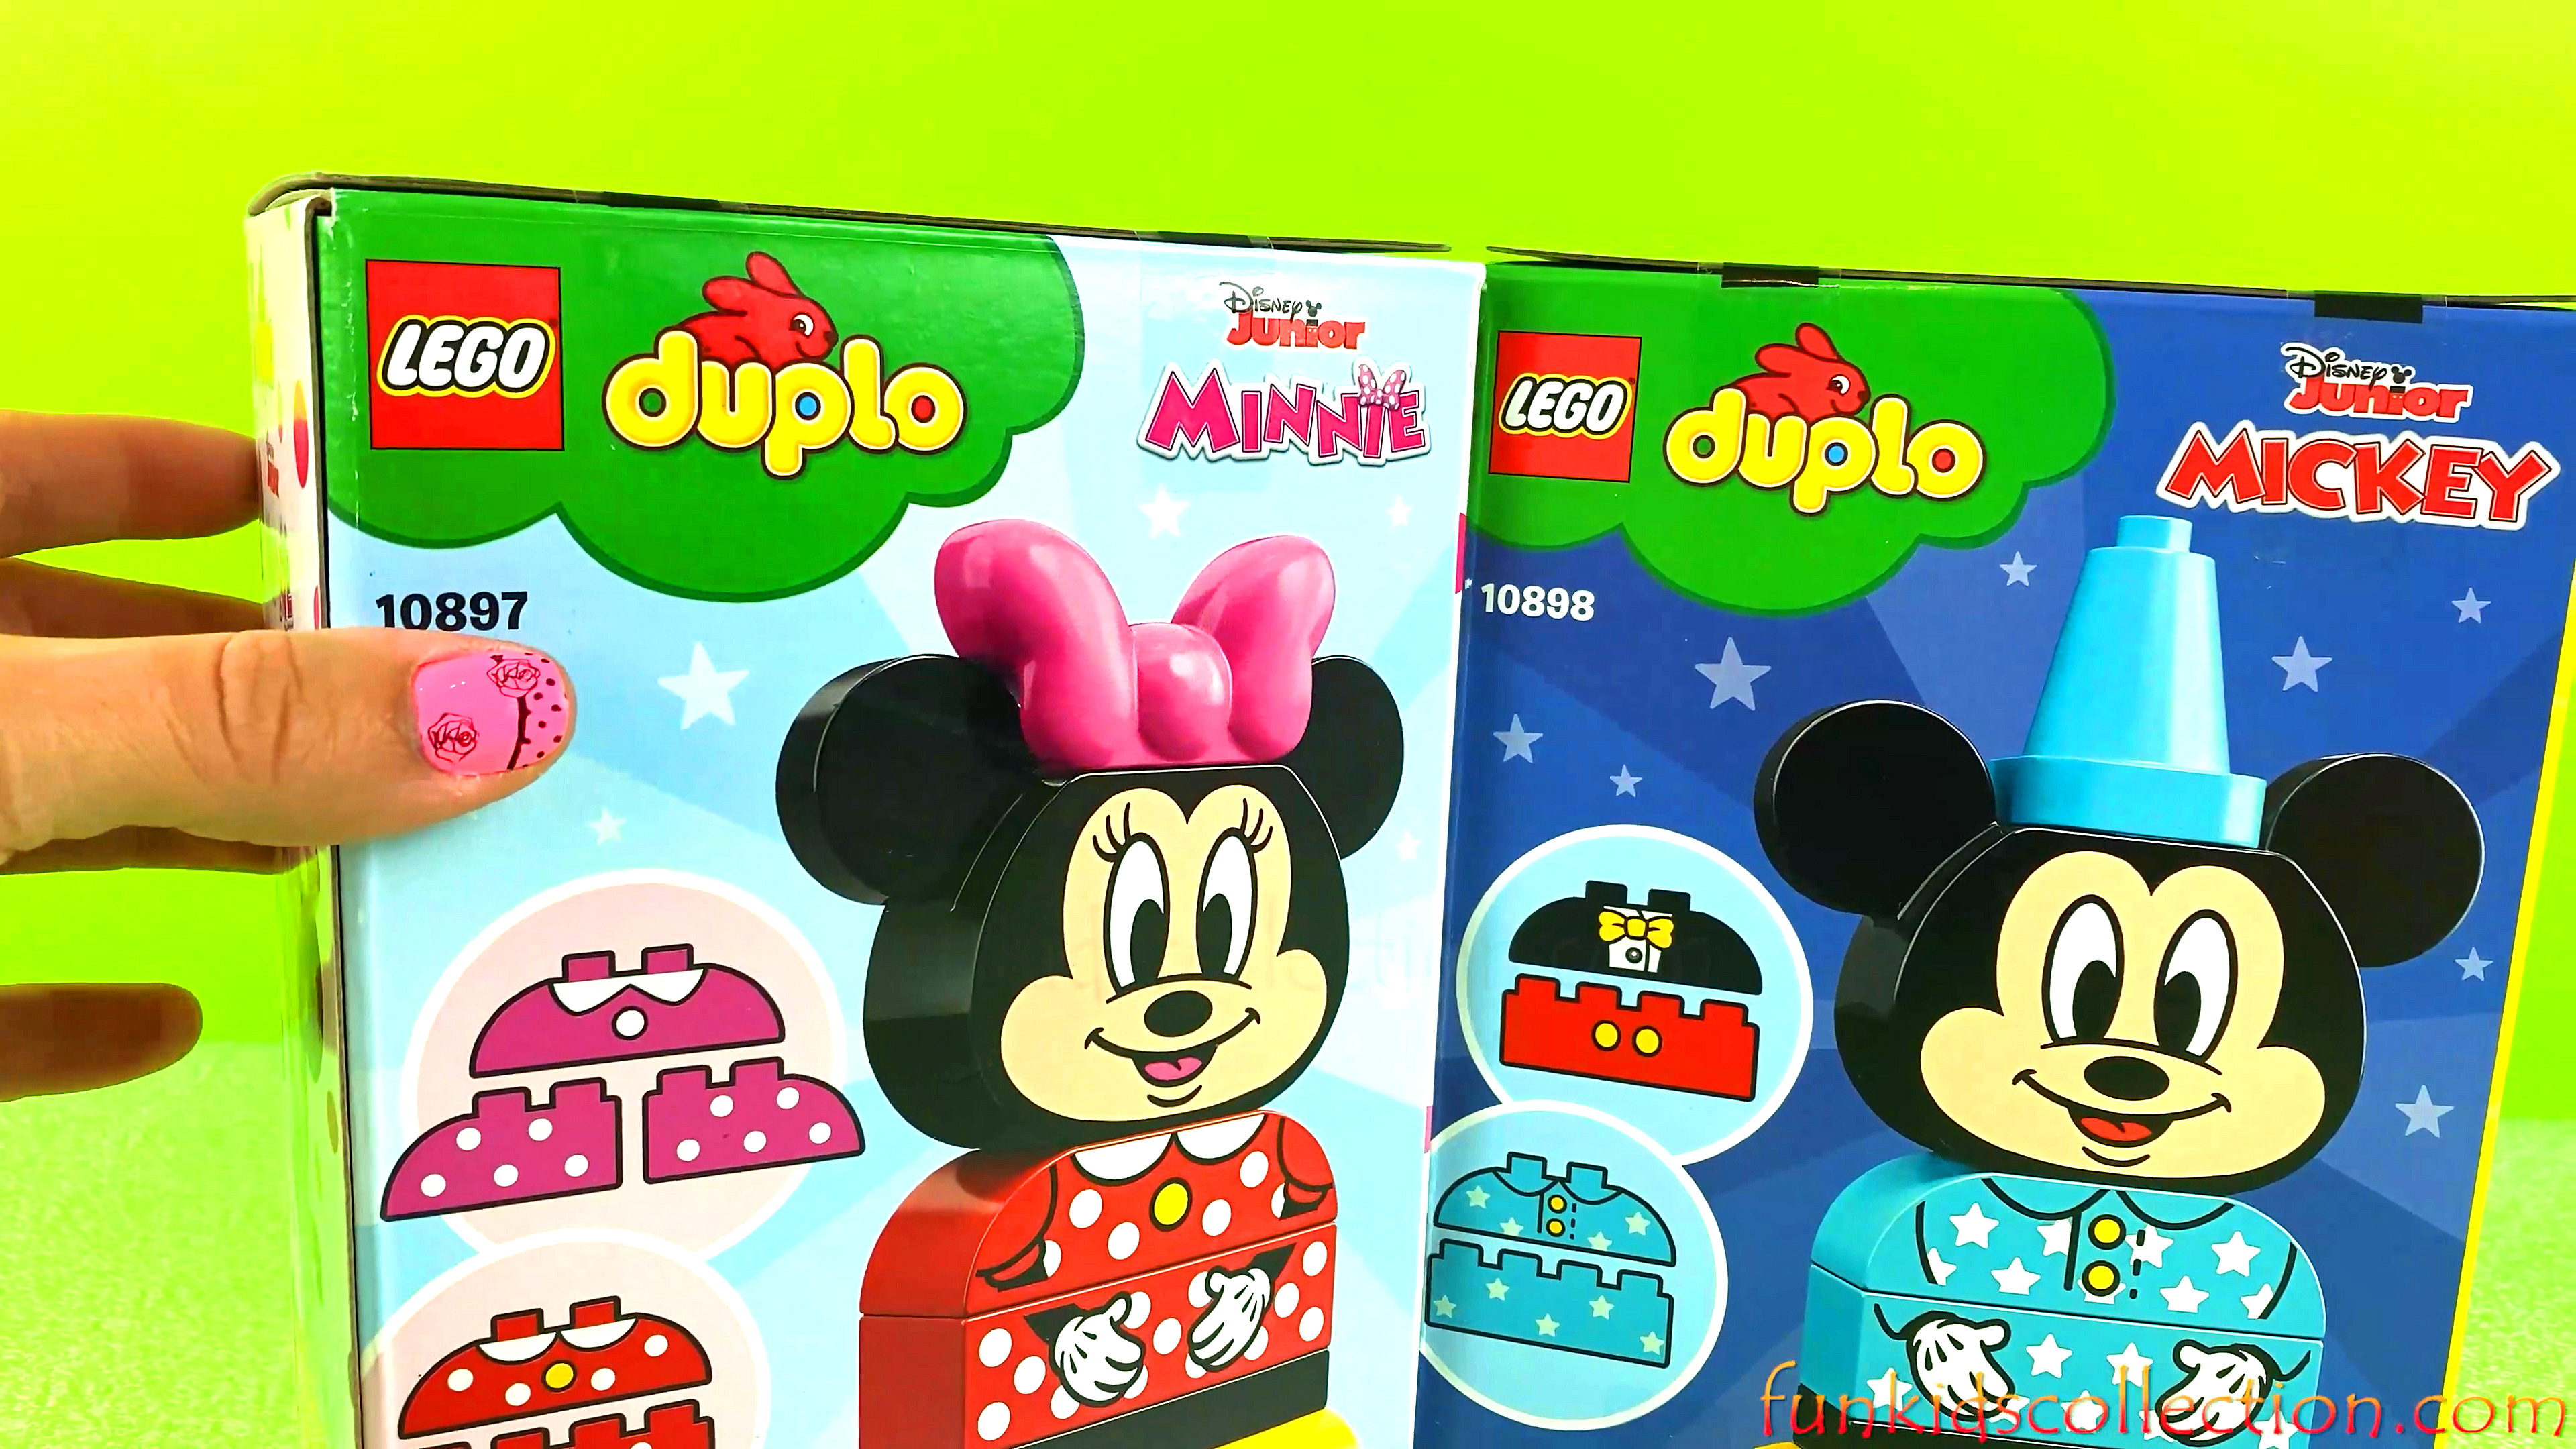 Disney Junior Mickey & Minnie Duplo Lego | Creating Mickey & Minnie Duplo Lego 10 pcs